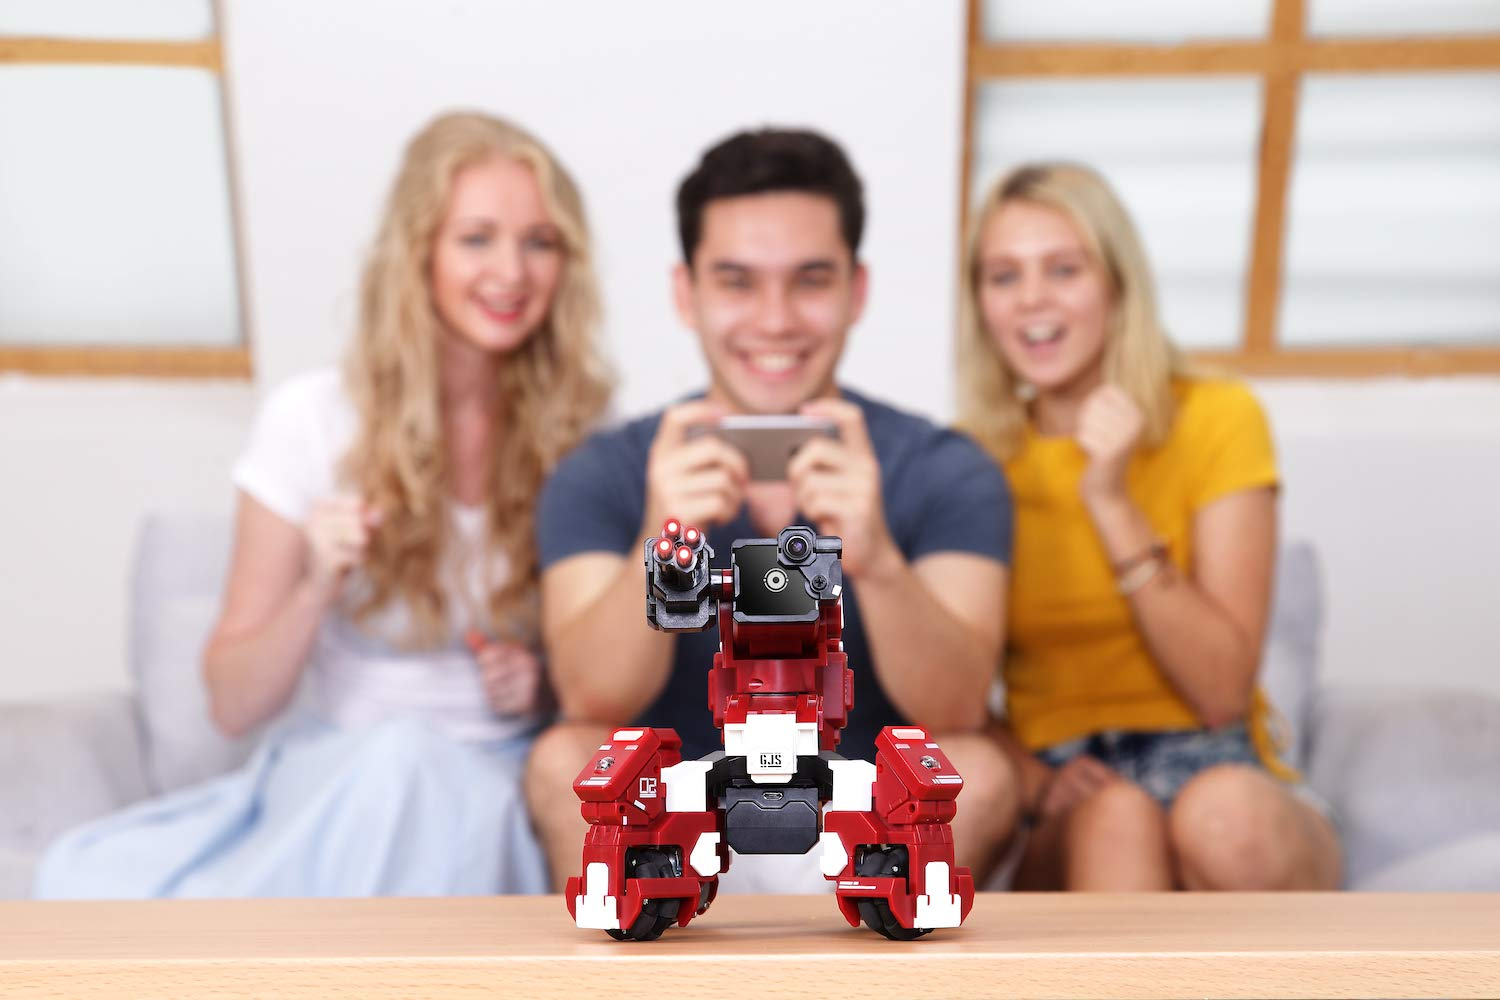 GJS Robot - GEIO App-Enabled Augmented Reality Gaming Robot with High Speed Motion System, Multi-Player Battle Mode and STEM Coding Interface, Red by GJS Robot (Image #5)